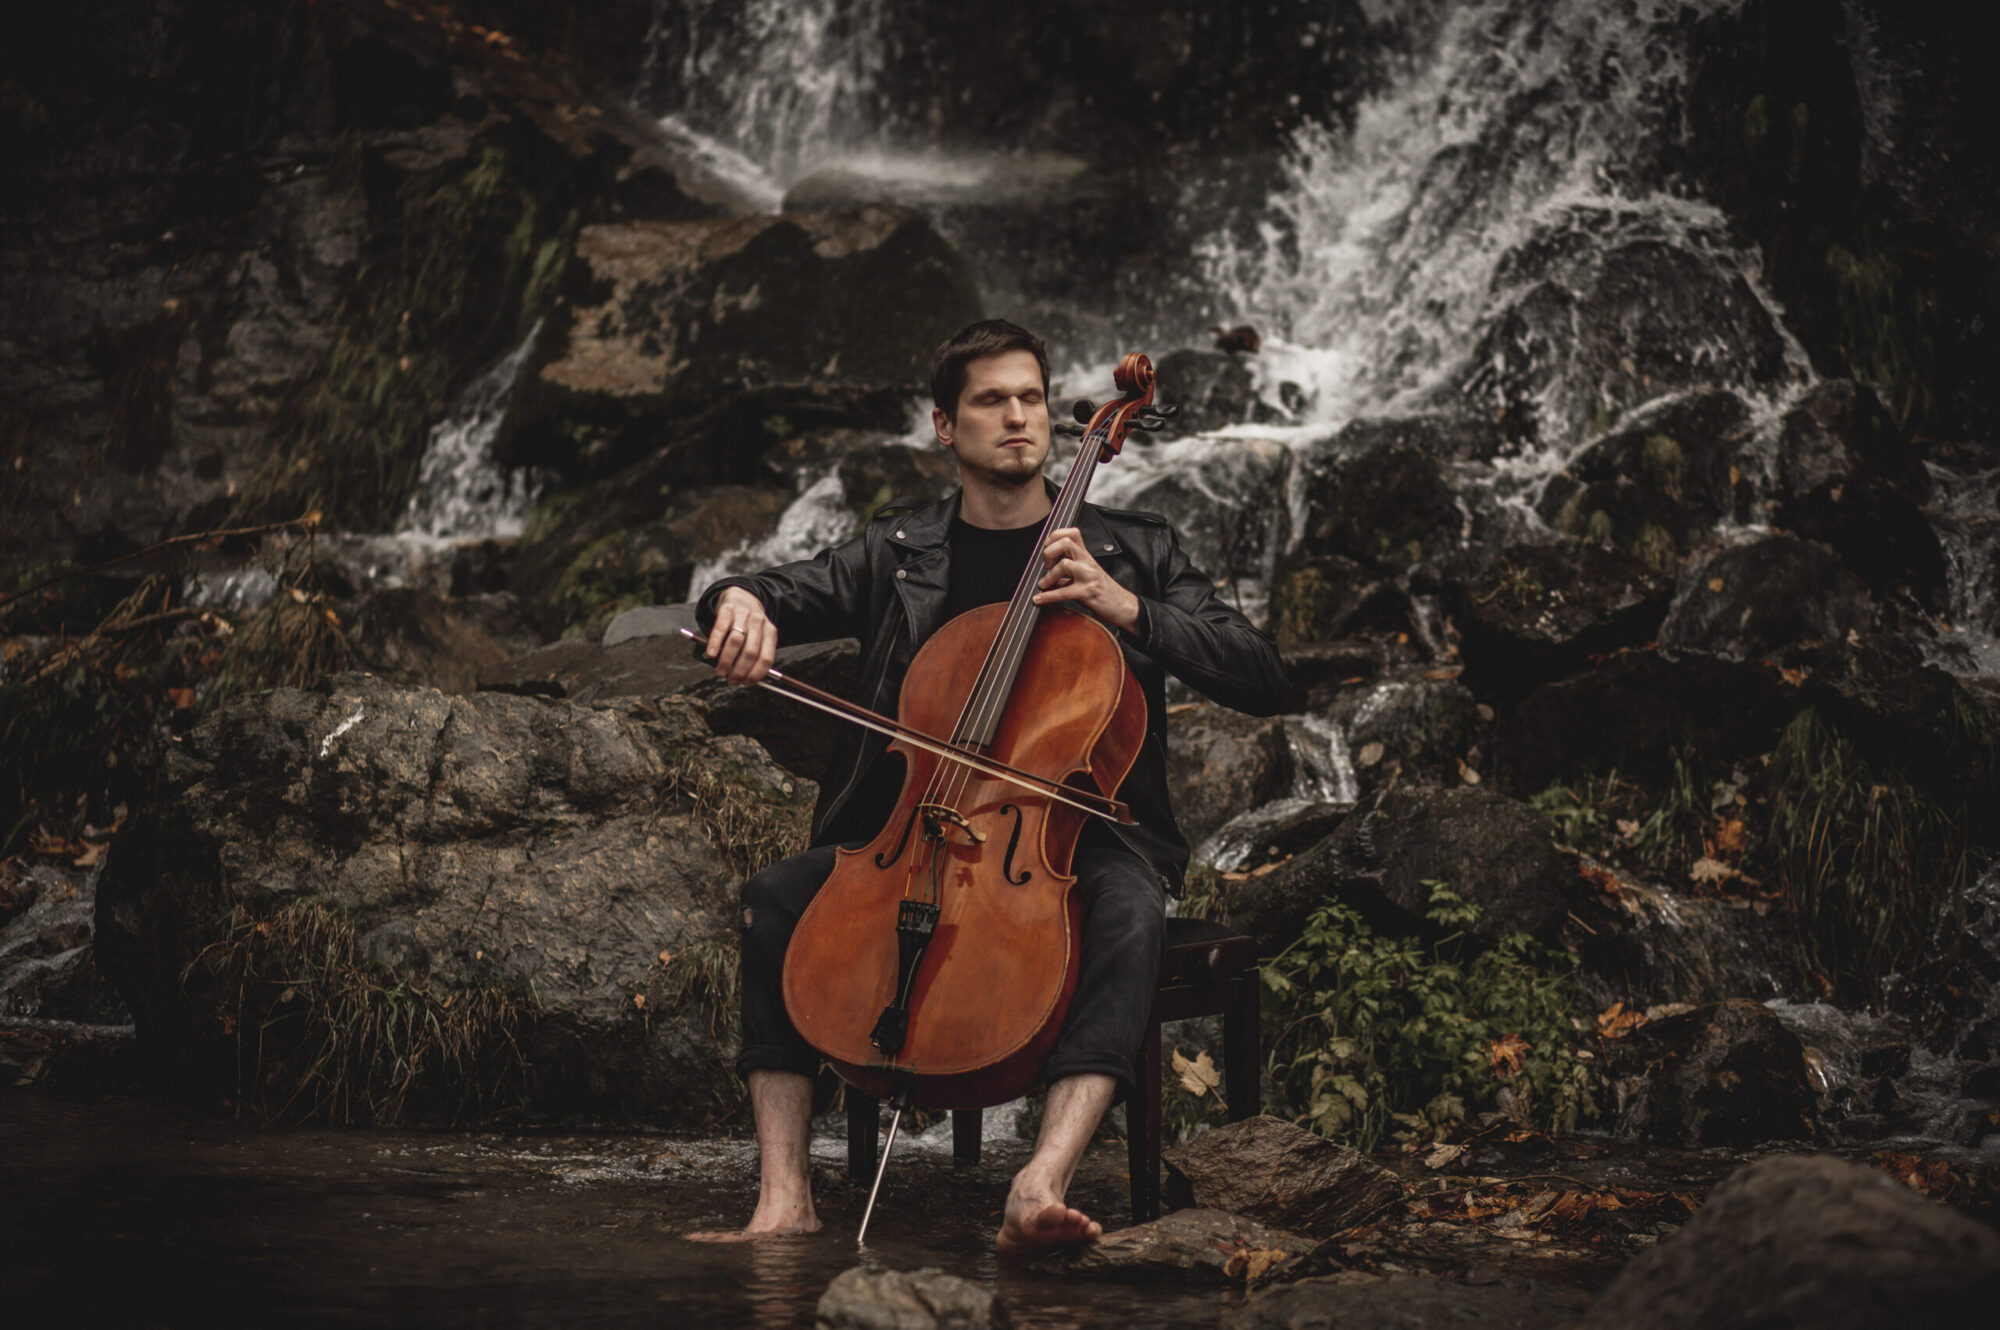 #The Cellist